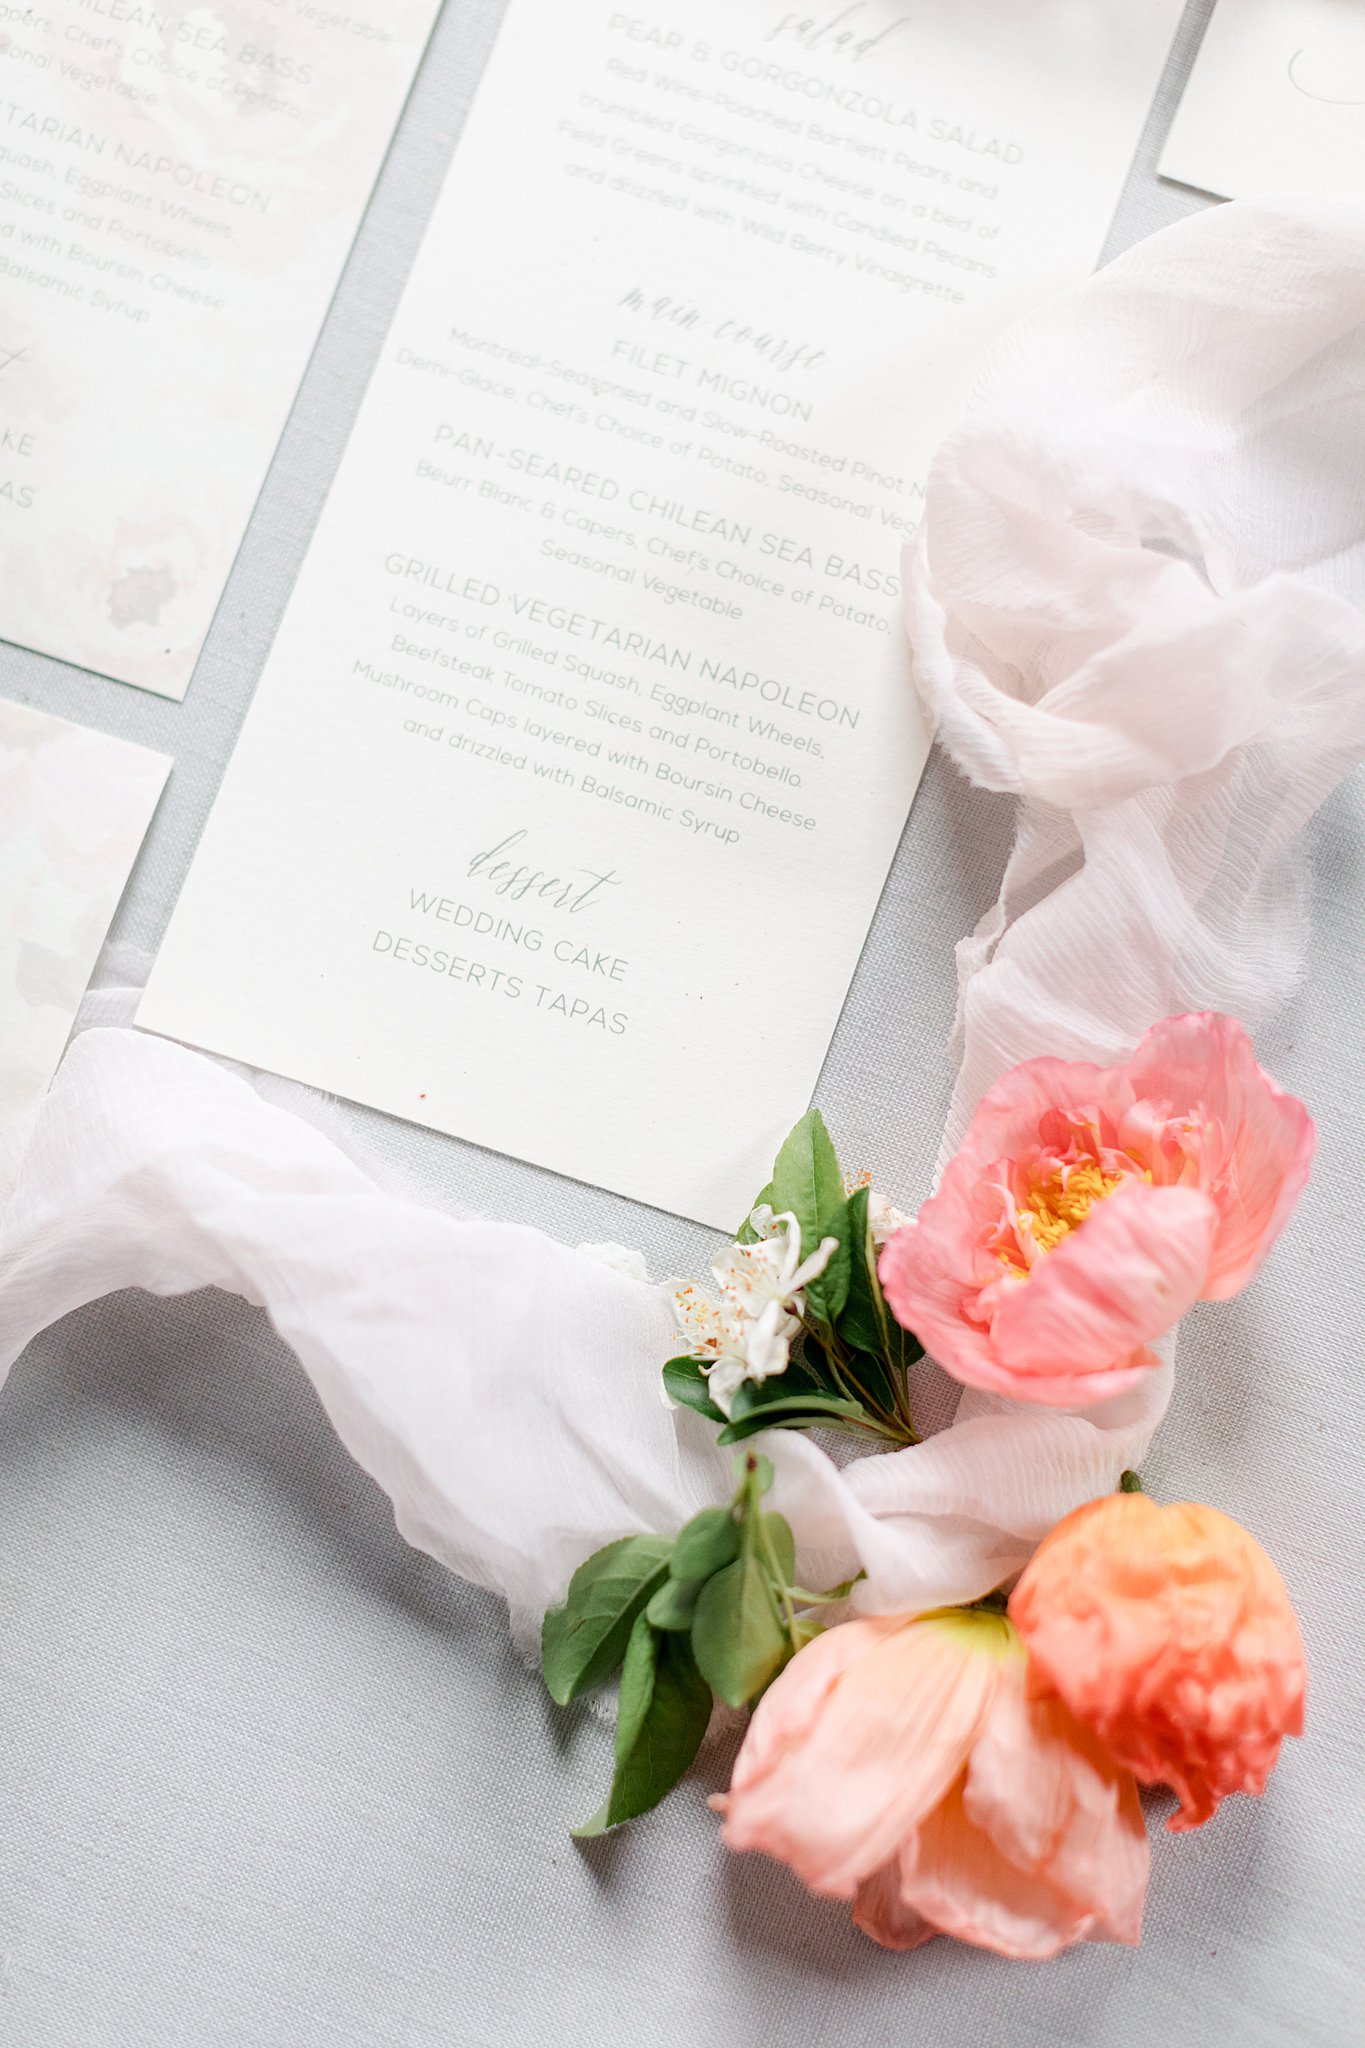 Bespoke Stationery - Your invitation suite is the first thing your guests will receive to welcome them to your wedding day. Share with them a beautiful invitation that speaks to the theme and formality of your day. A fun new trend is to add a custom illustration of your wedding venue to the invitation suite.